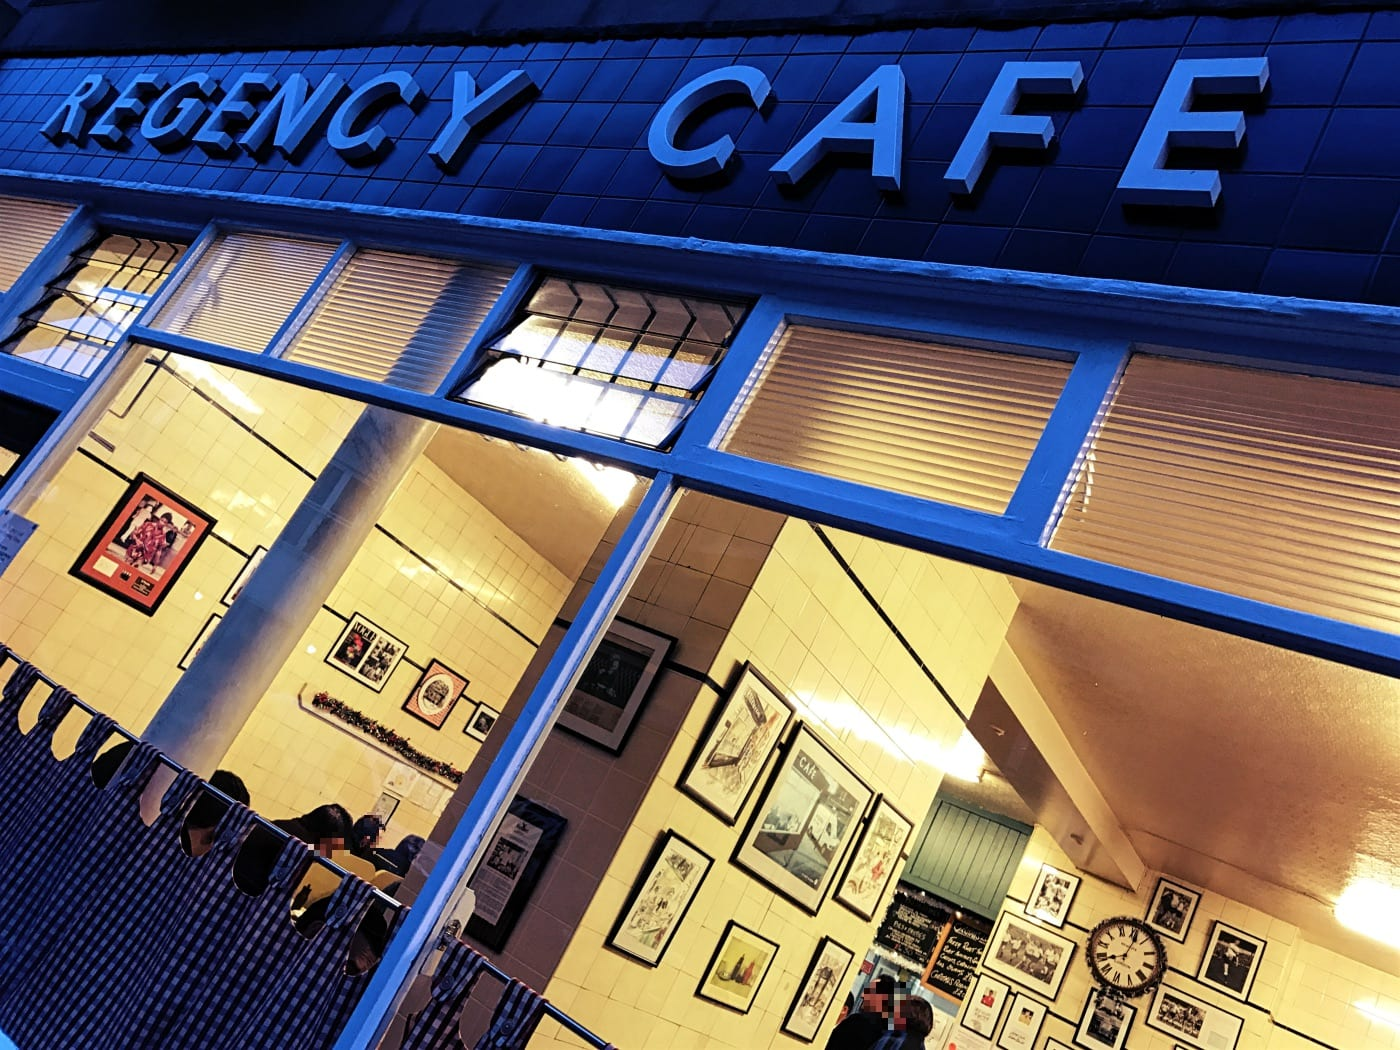 regency-cafe-london-2